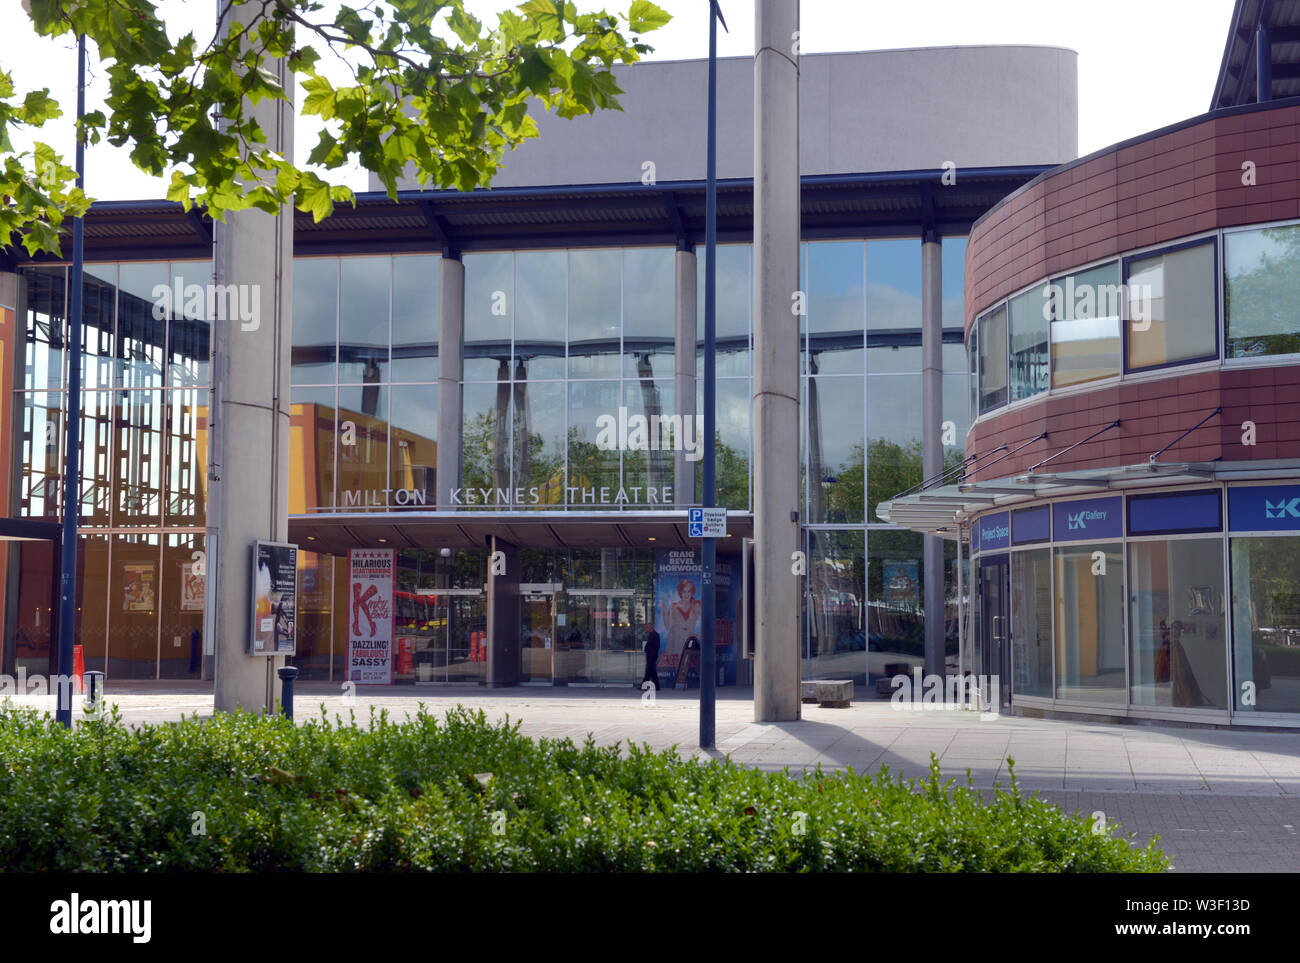 Milton Keynes theatre front entrance seen from Midsummer Boulevard. The 1,900 capacity theatre has been open since 1999. - Stock Image